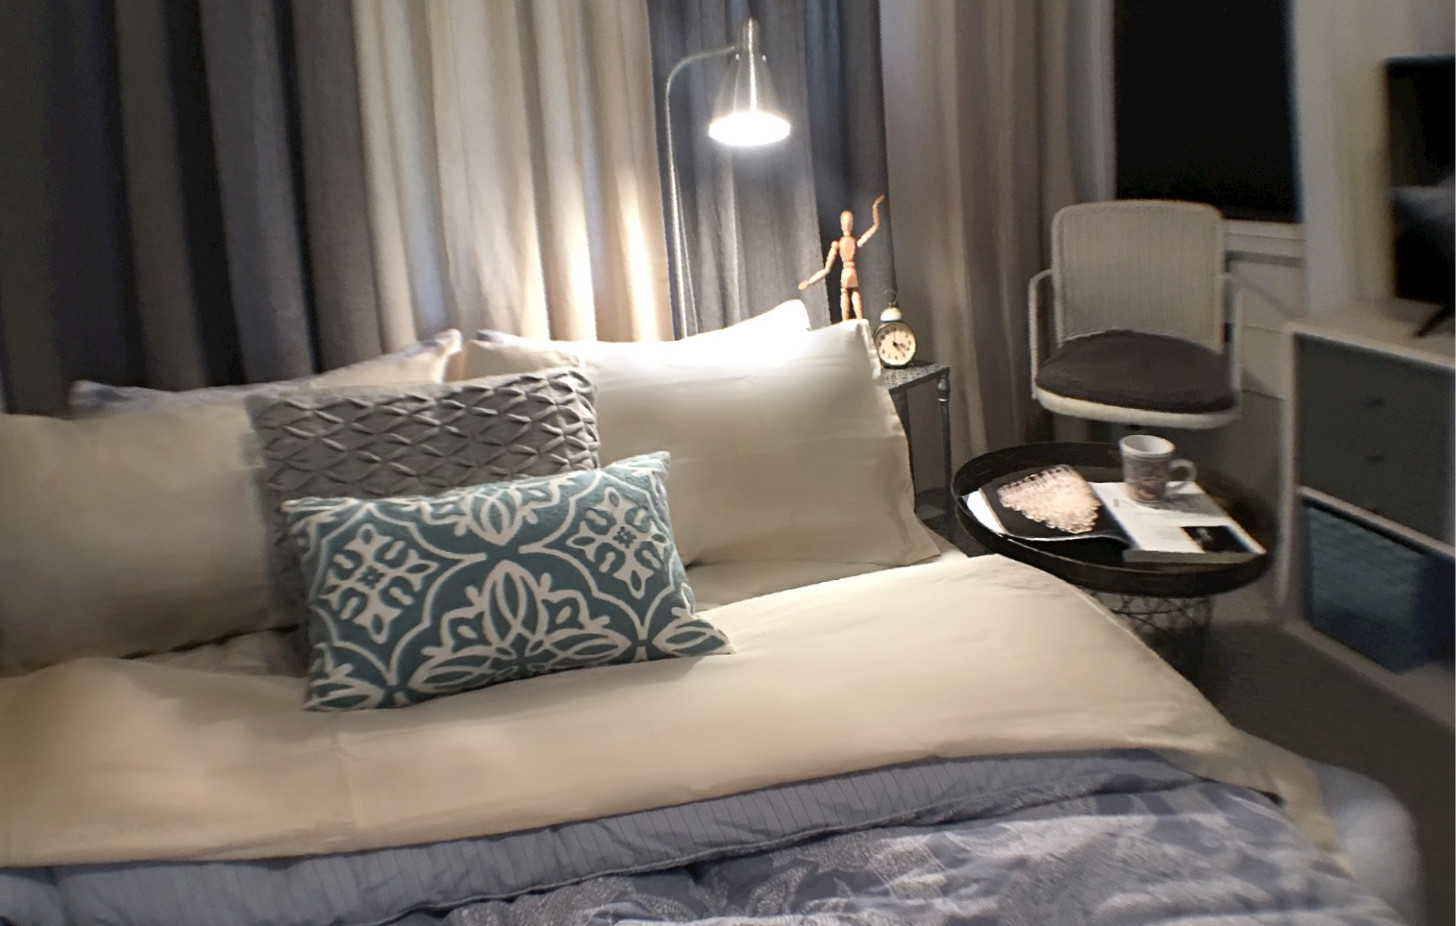 APT 208 - Ready for Bed